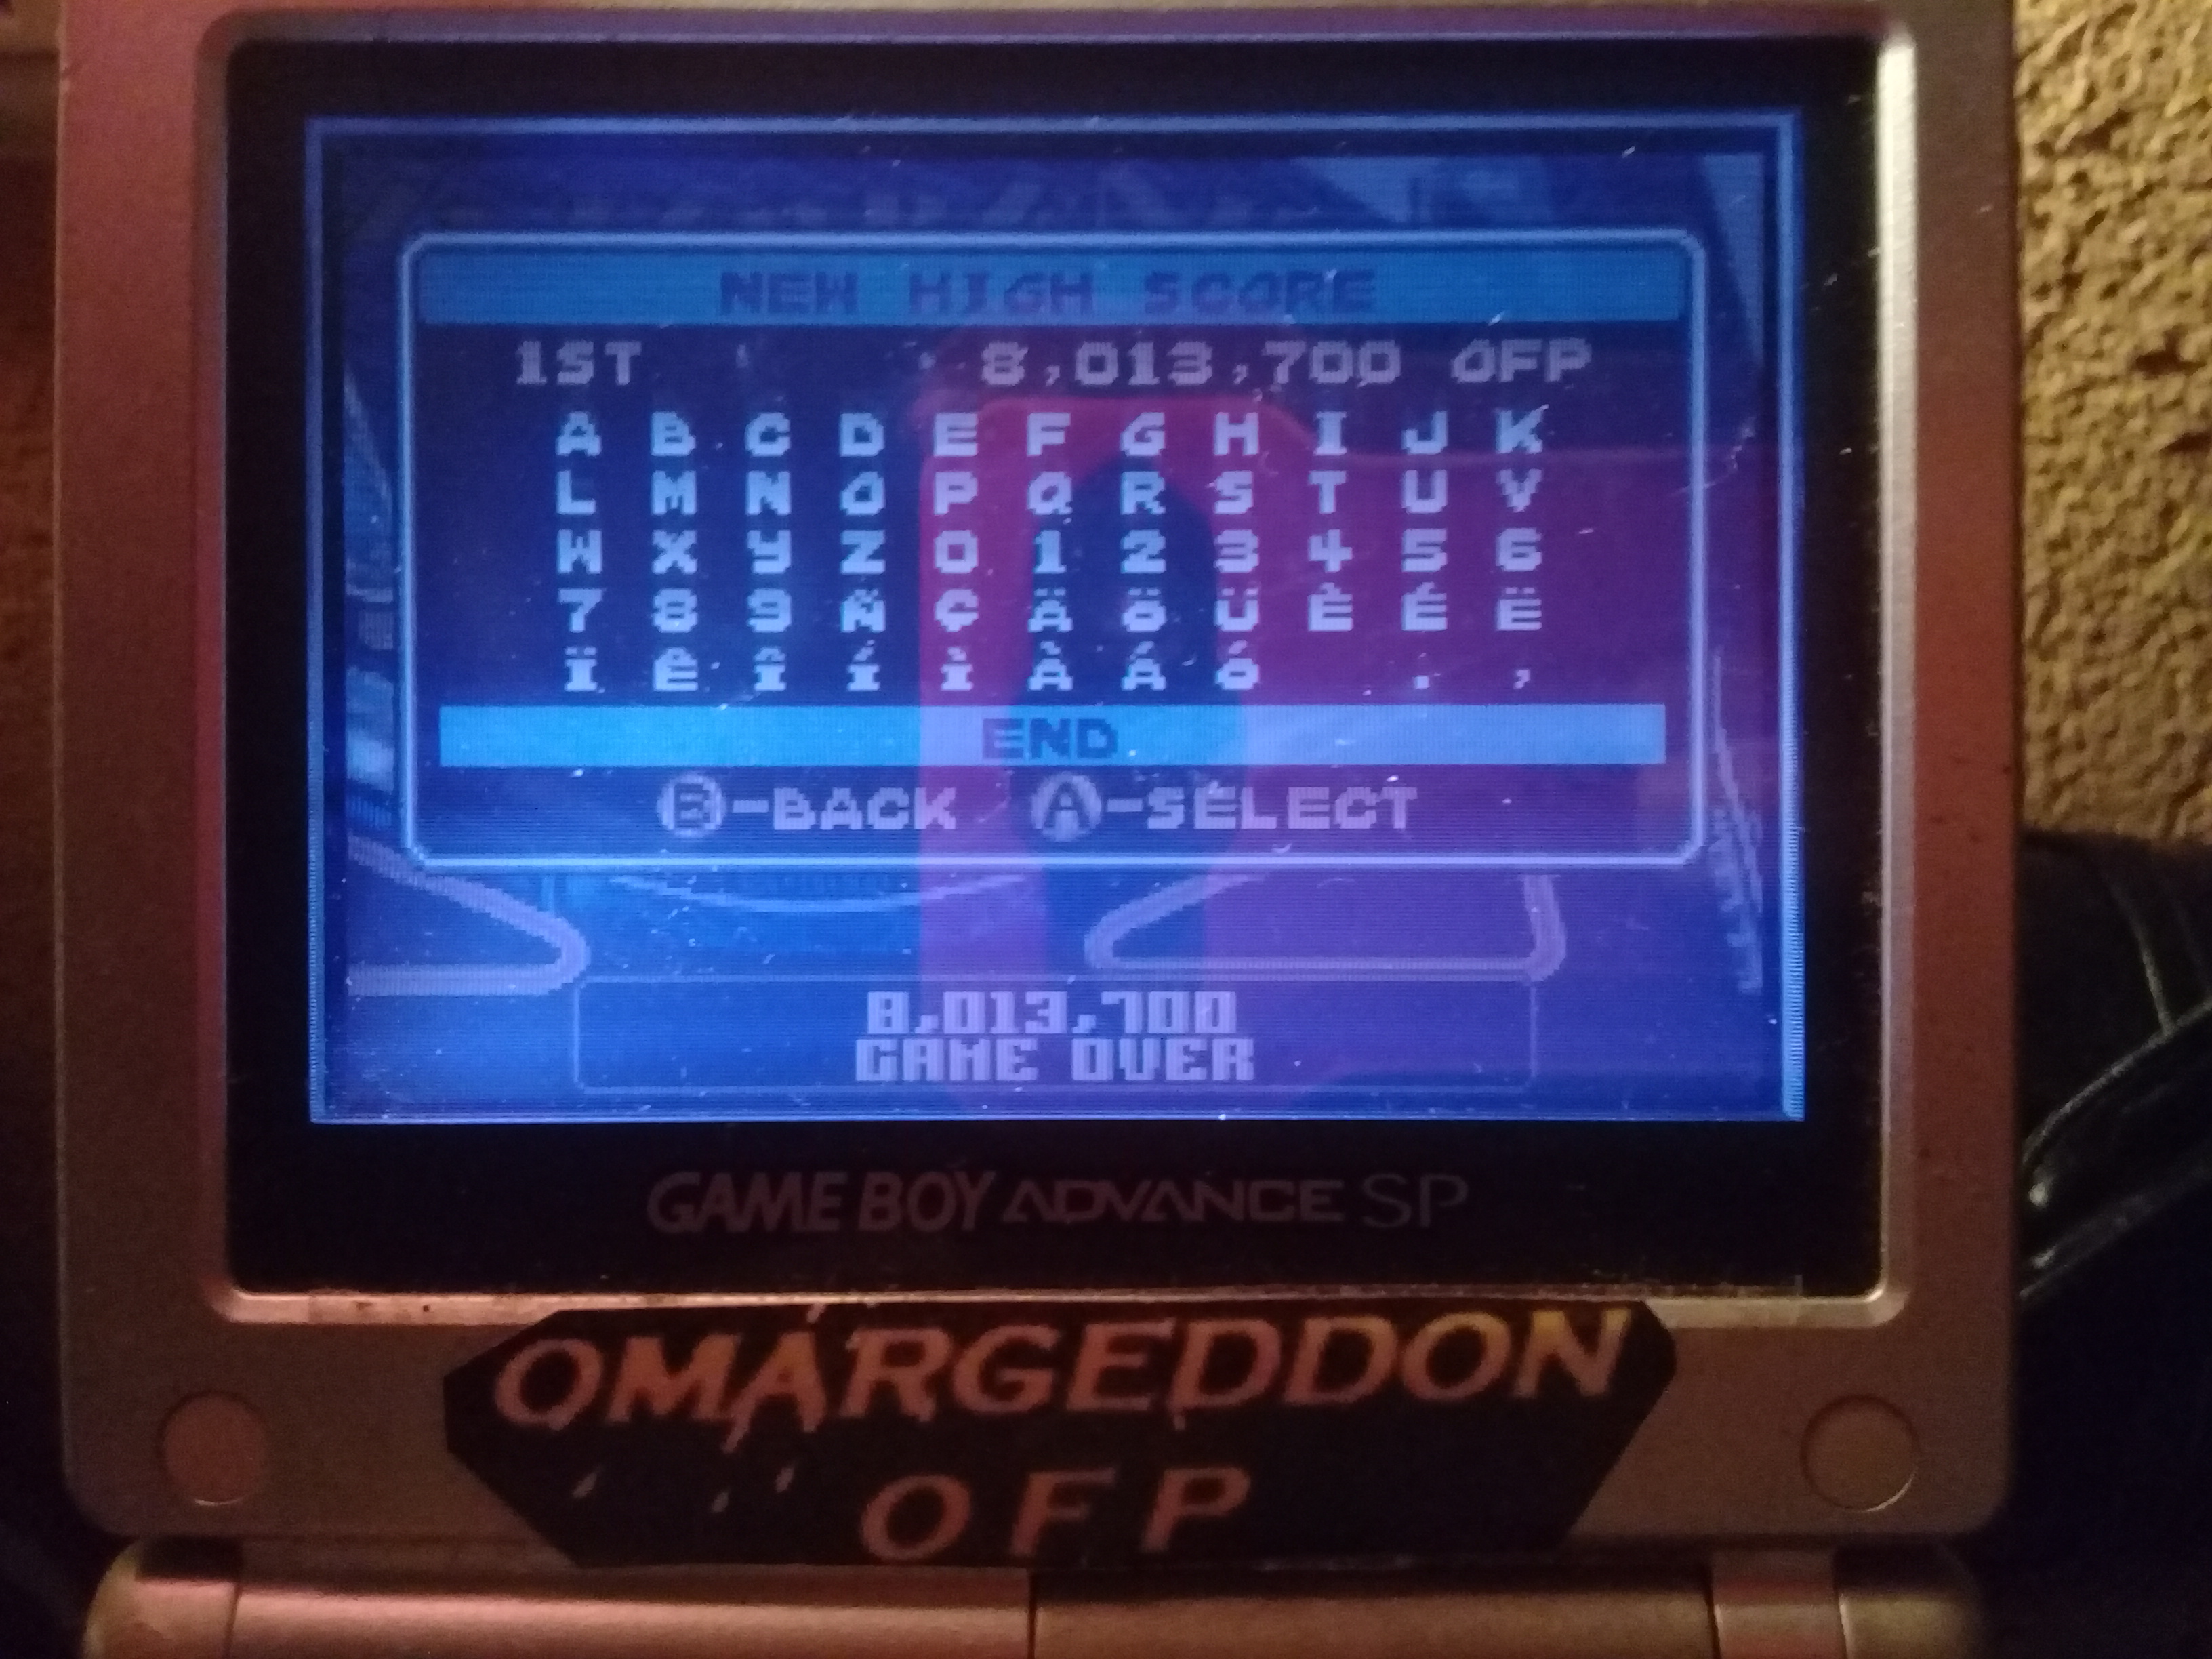 omargeddon: Pinball Advance: Jailbreak [3 Balls] [Easy] (GBA) 8,013,700 points on 2019-10-11 21:59:24